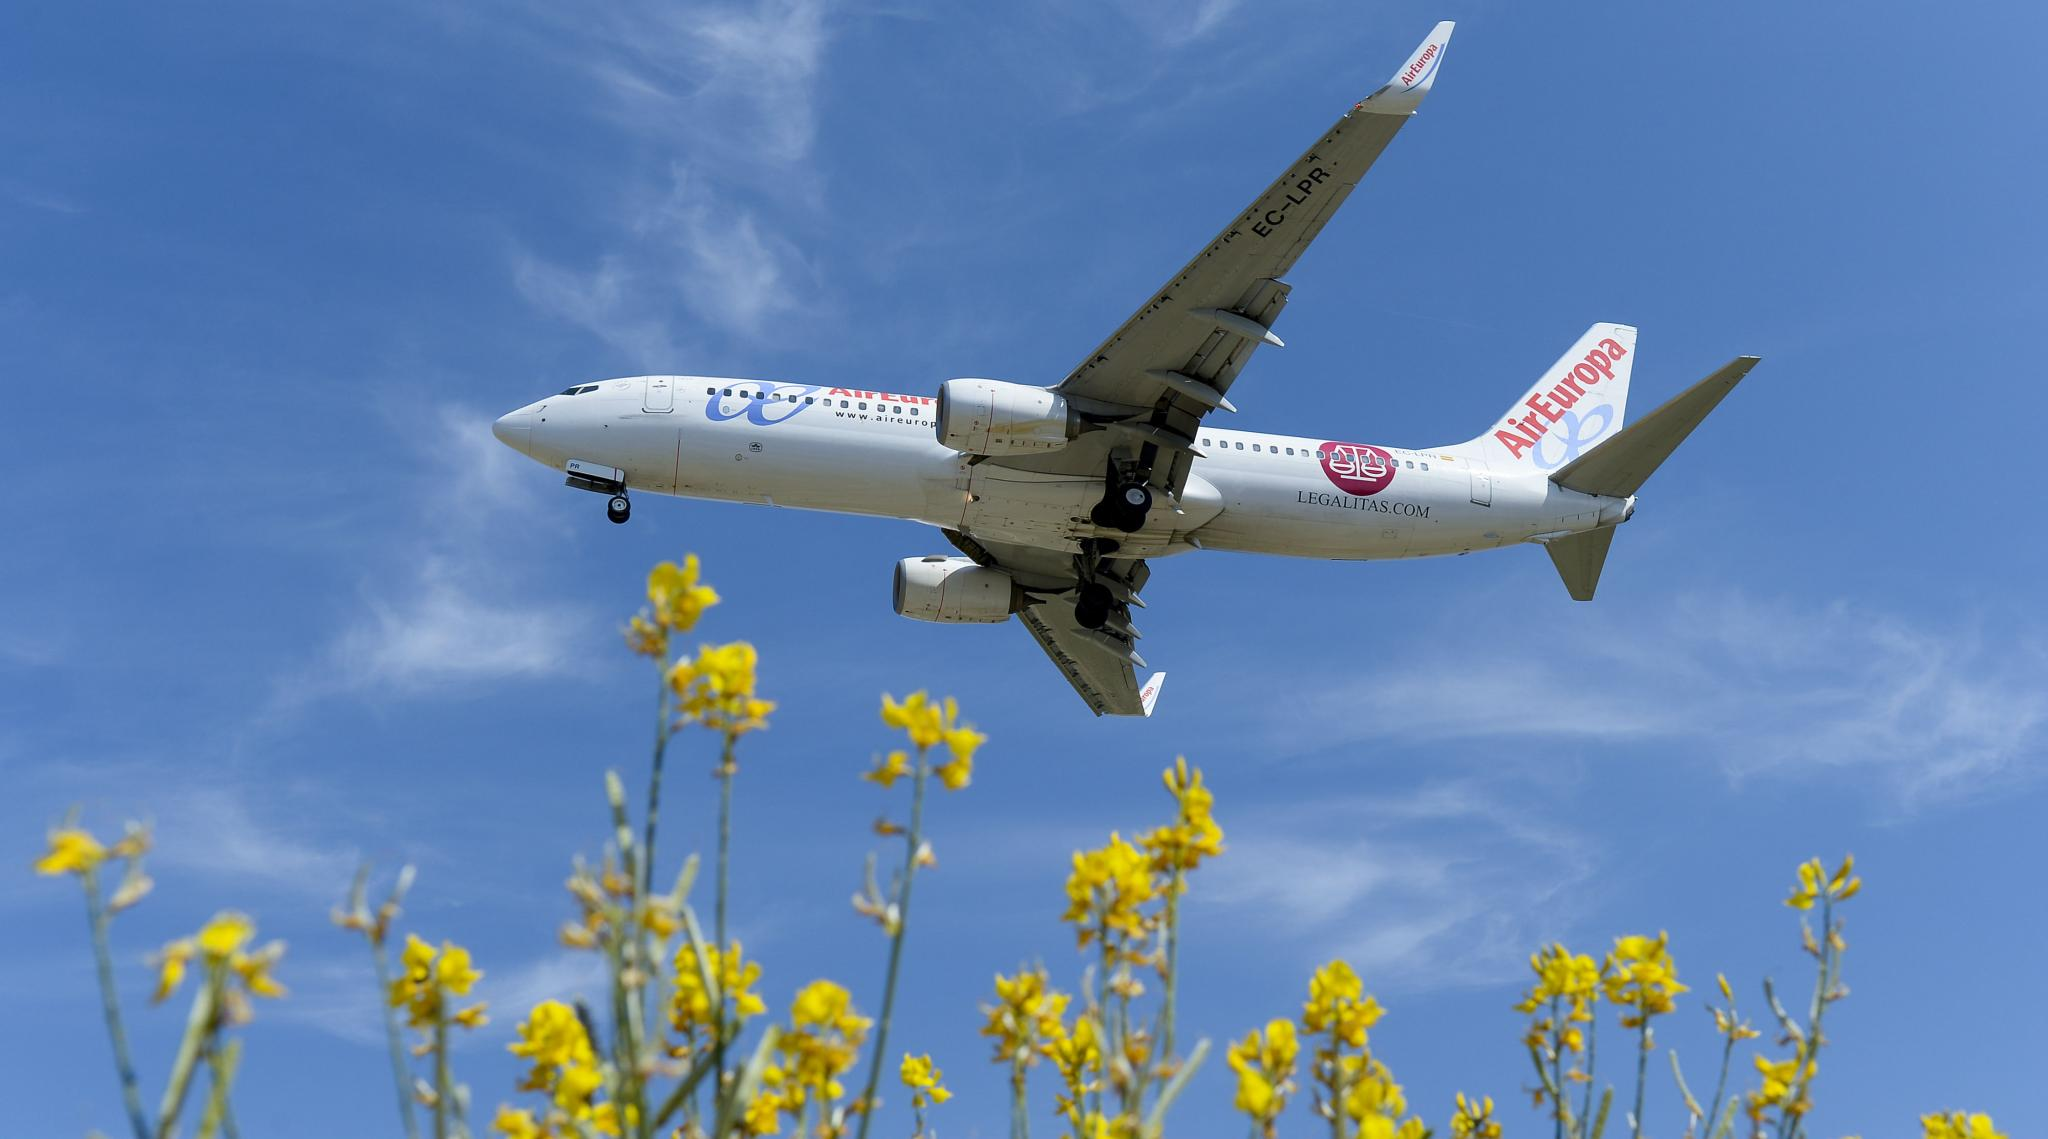 British Airways Owner IAG Agrees to Buy Spain's Air Europa for 1.0 Billion Euros